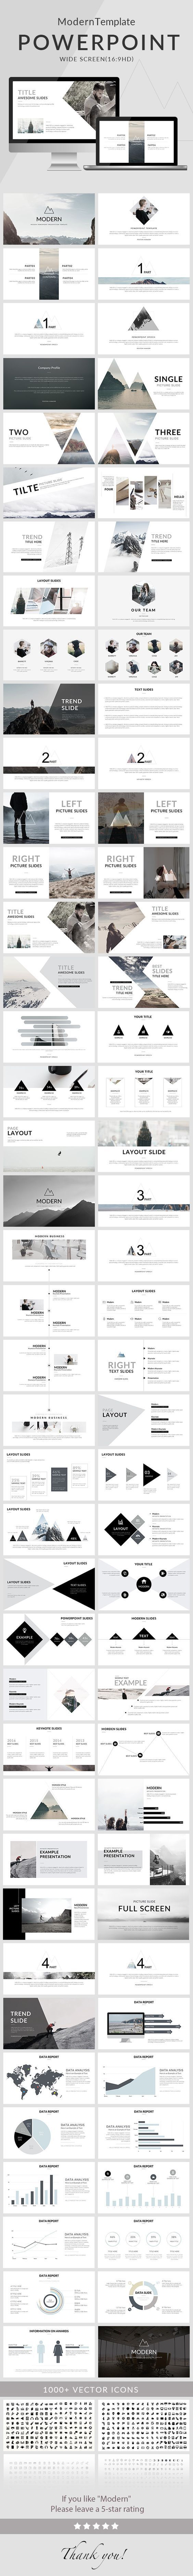 Business infographic modern powerpoint template creative business infographic modern powerpoint template creative powerpoint templates toneelgroepblik Choice Image